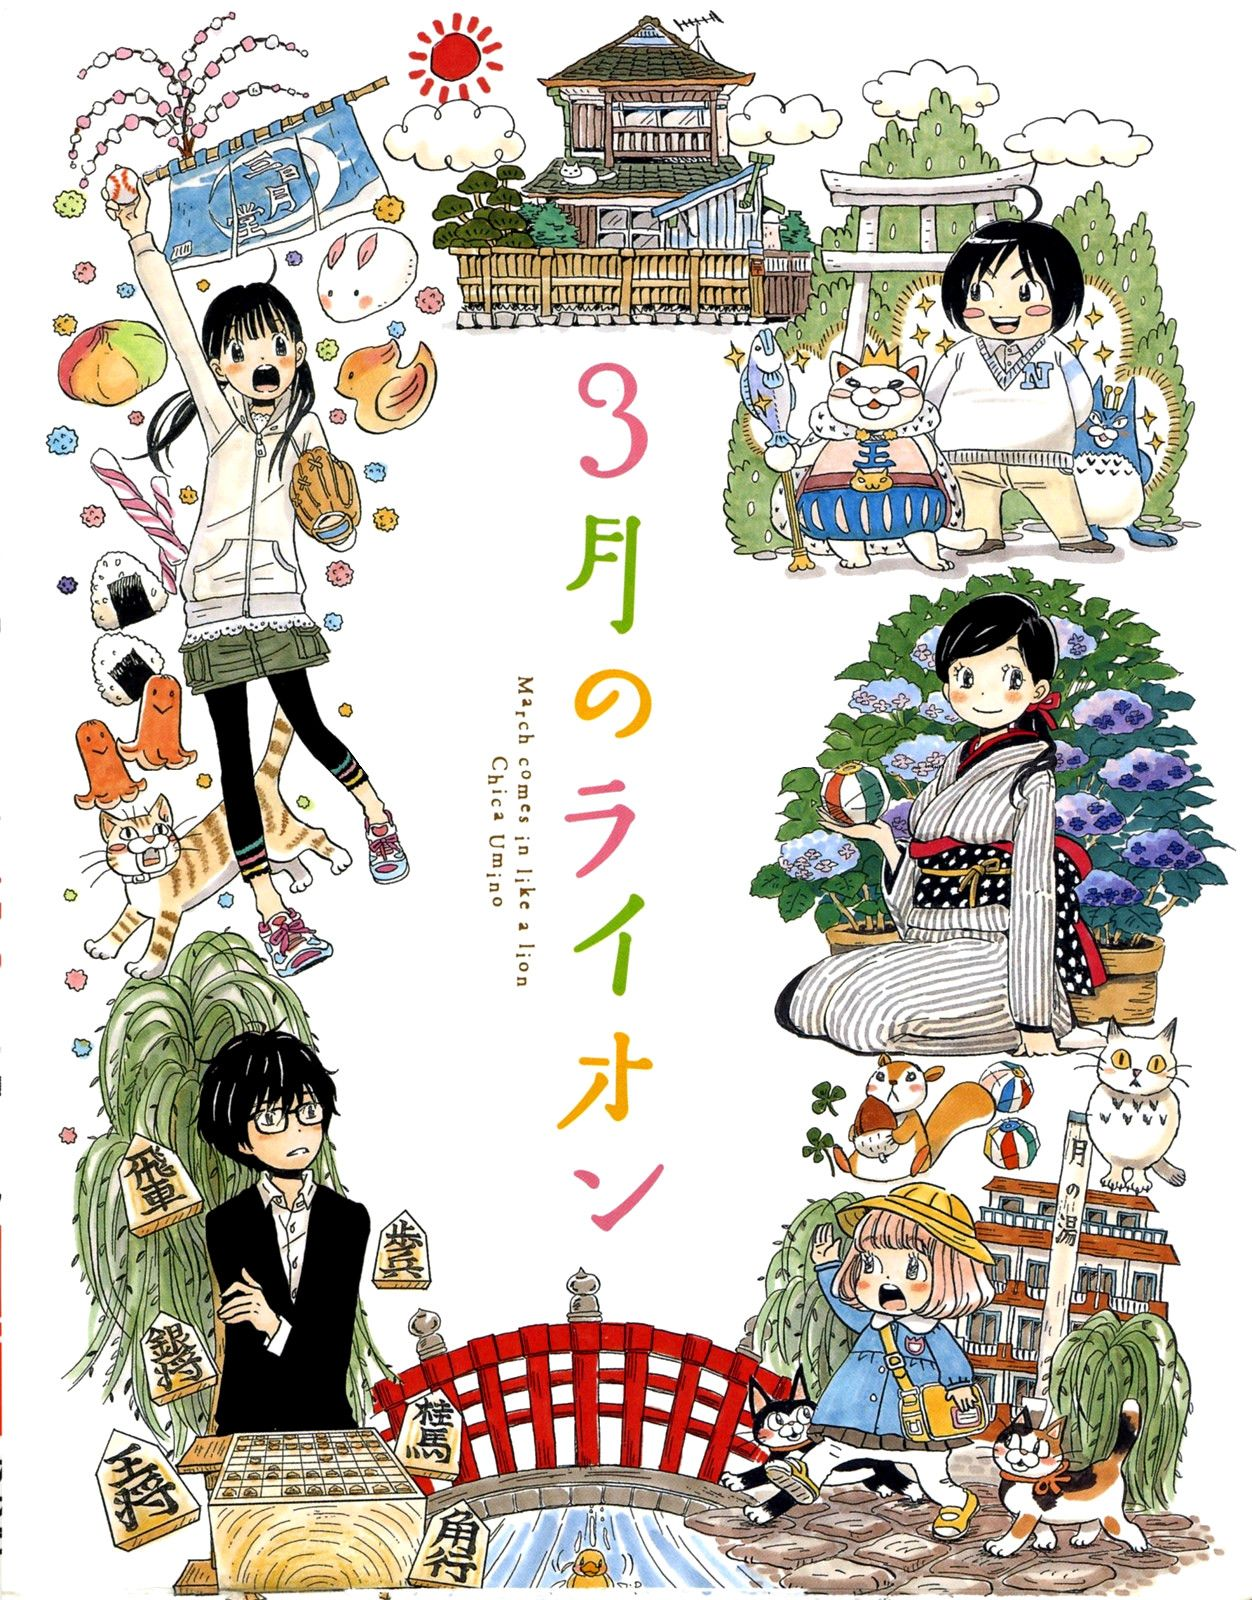 March Comes In Like A Lion By Chika Umino The Protagonist Rei Is A